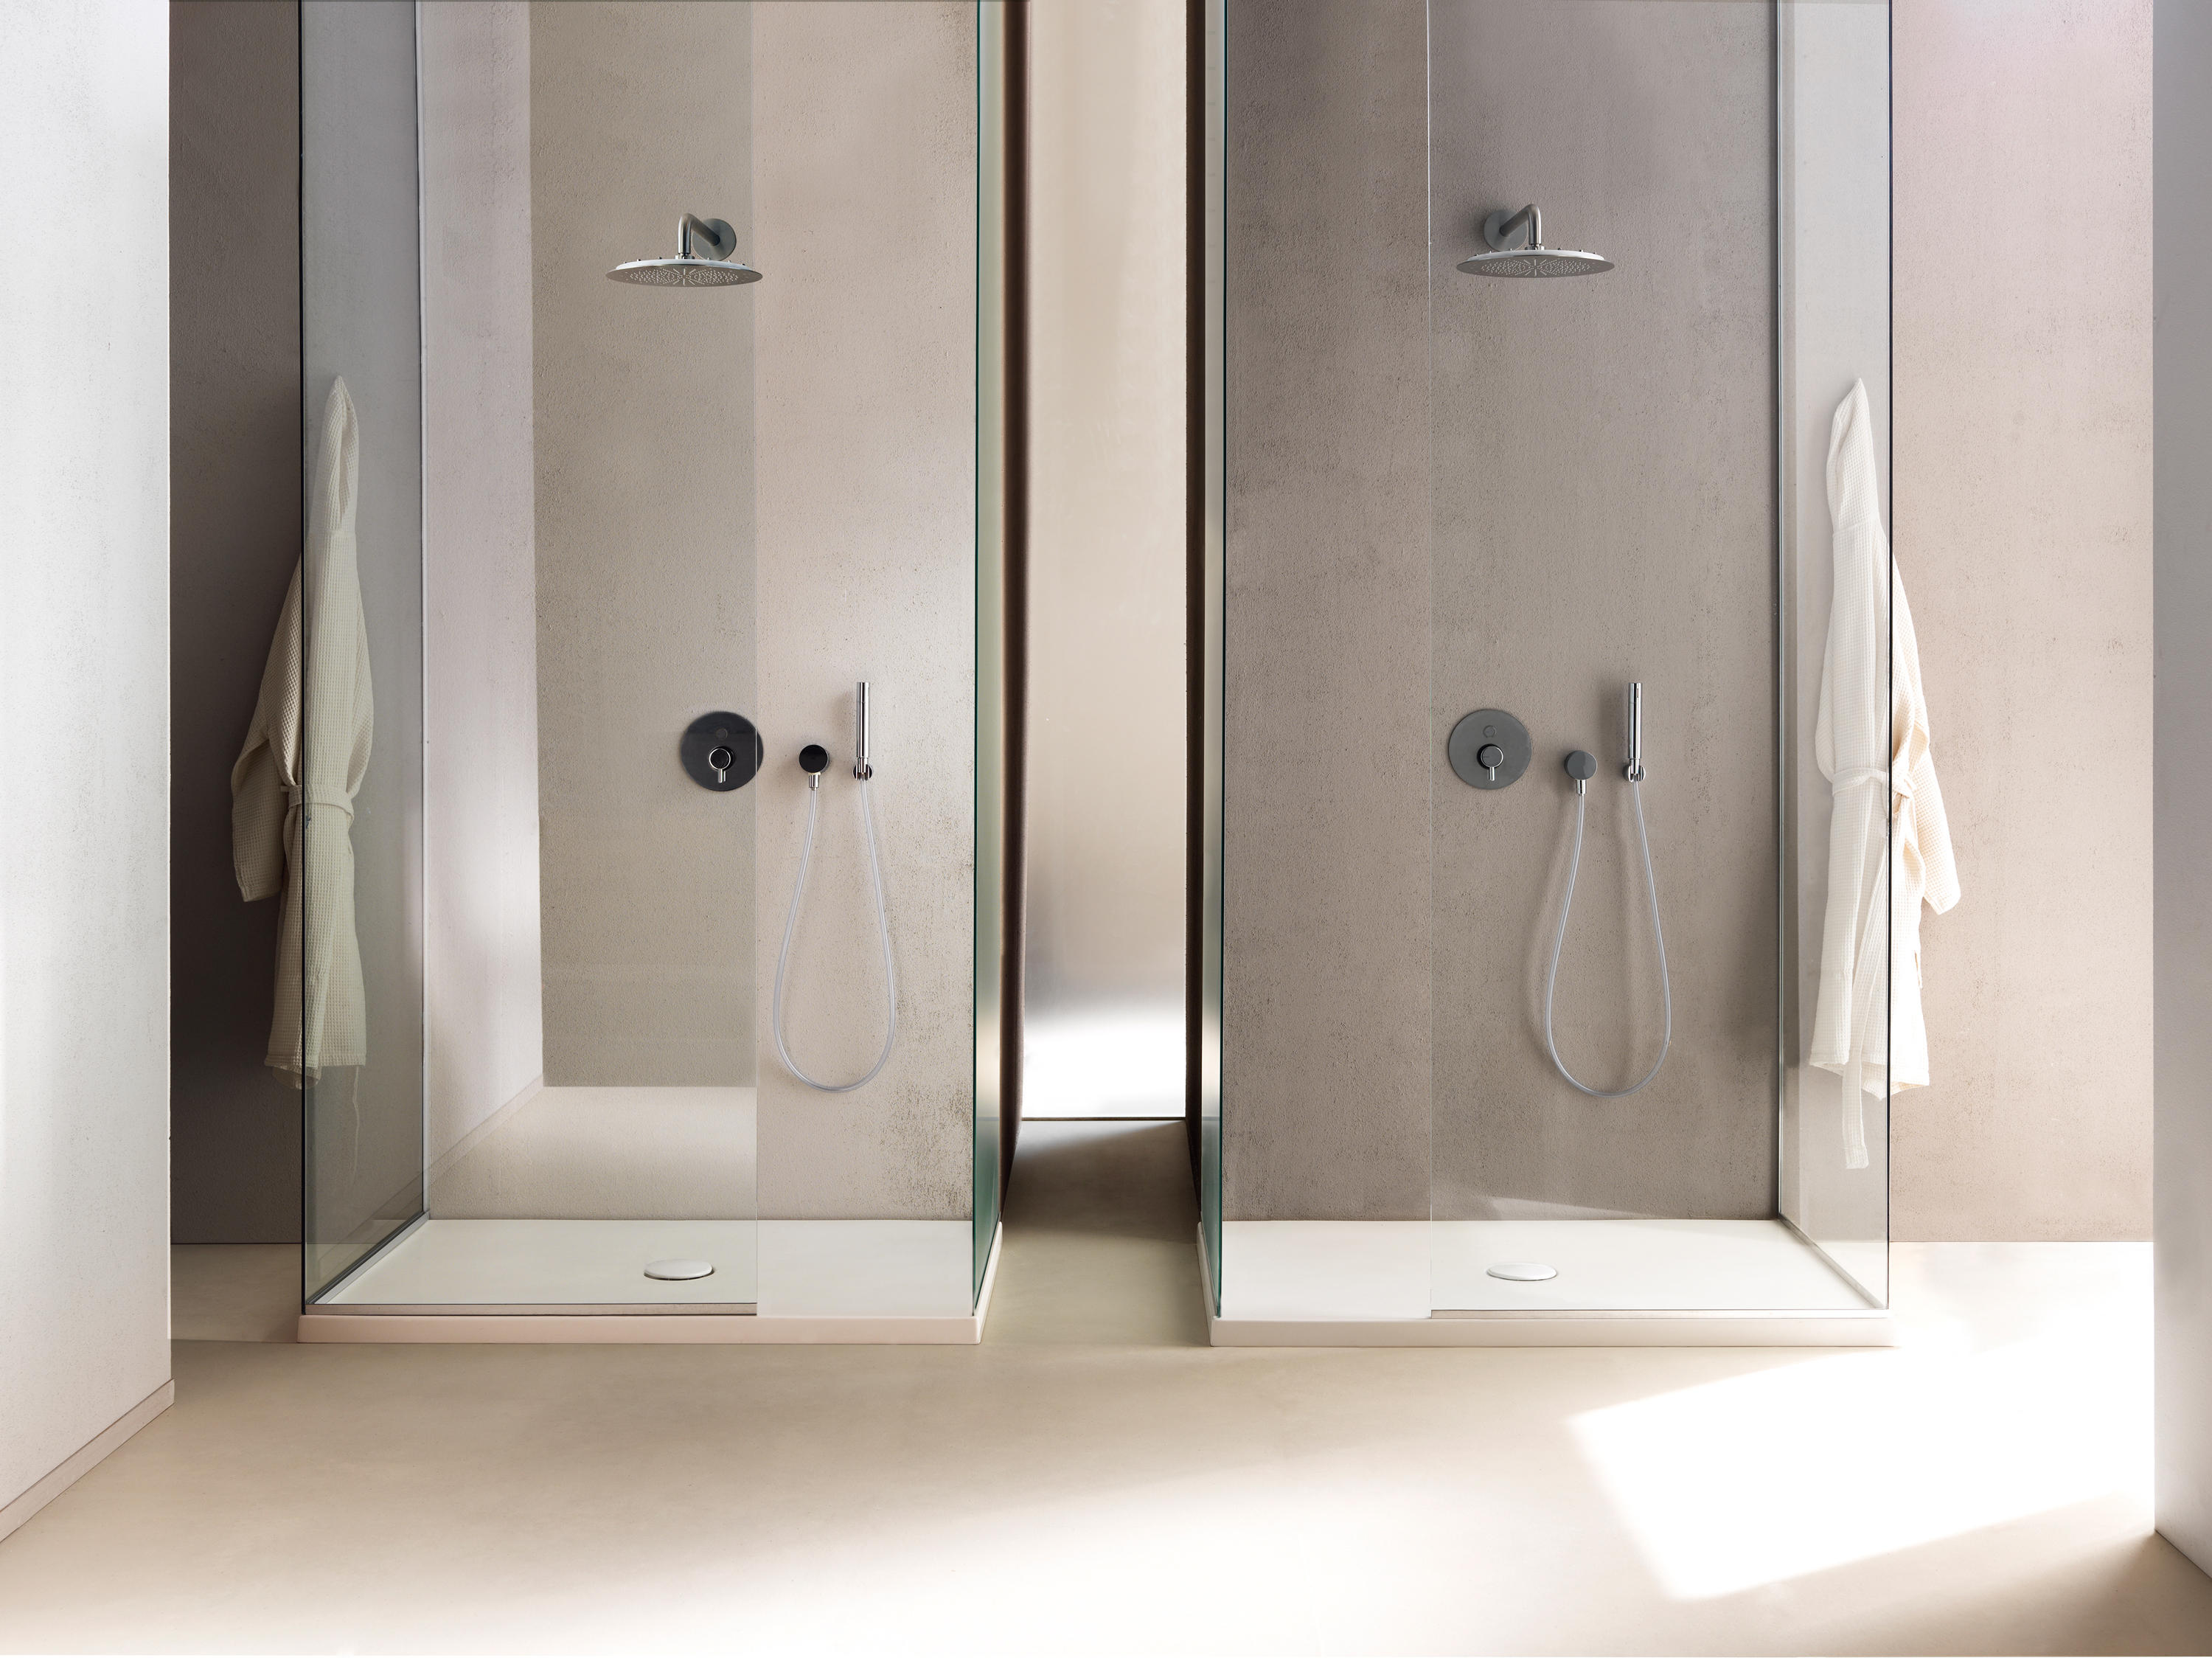 The shower world collezione cinquanta platos de ducha for Piatto doccia cielo